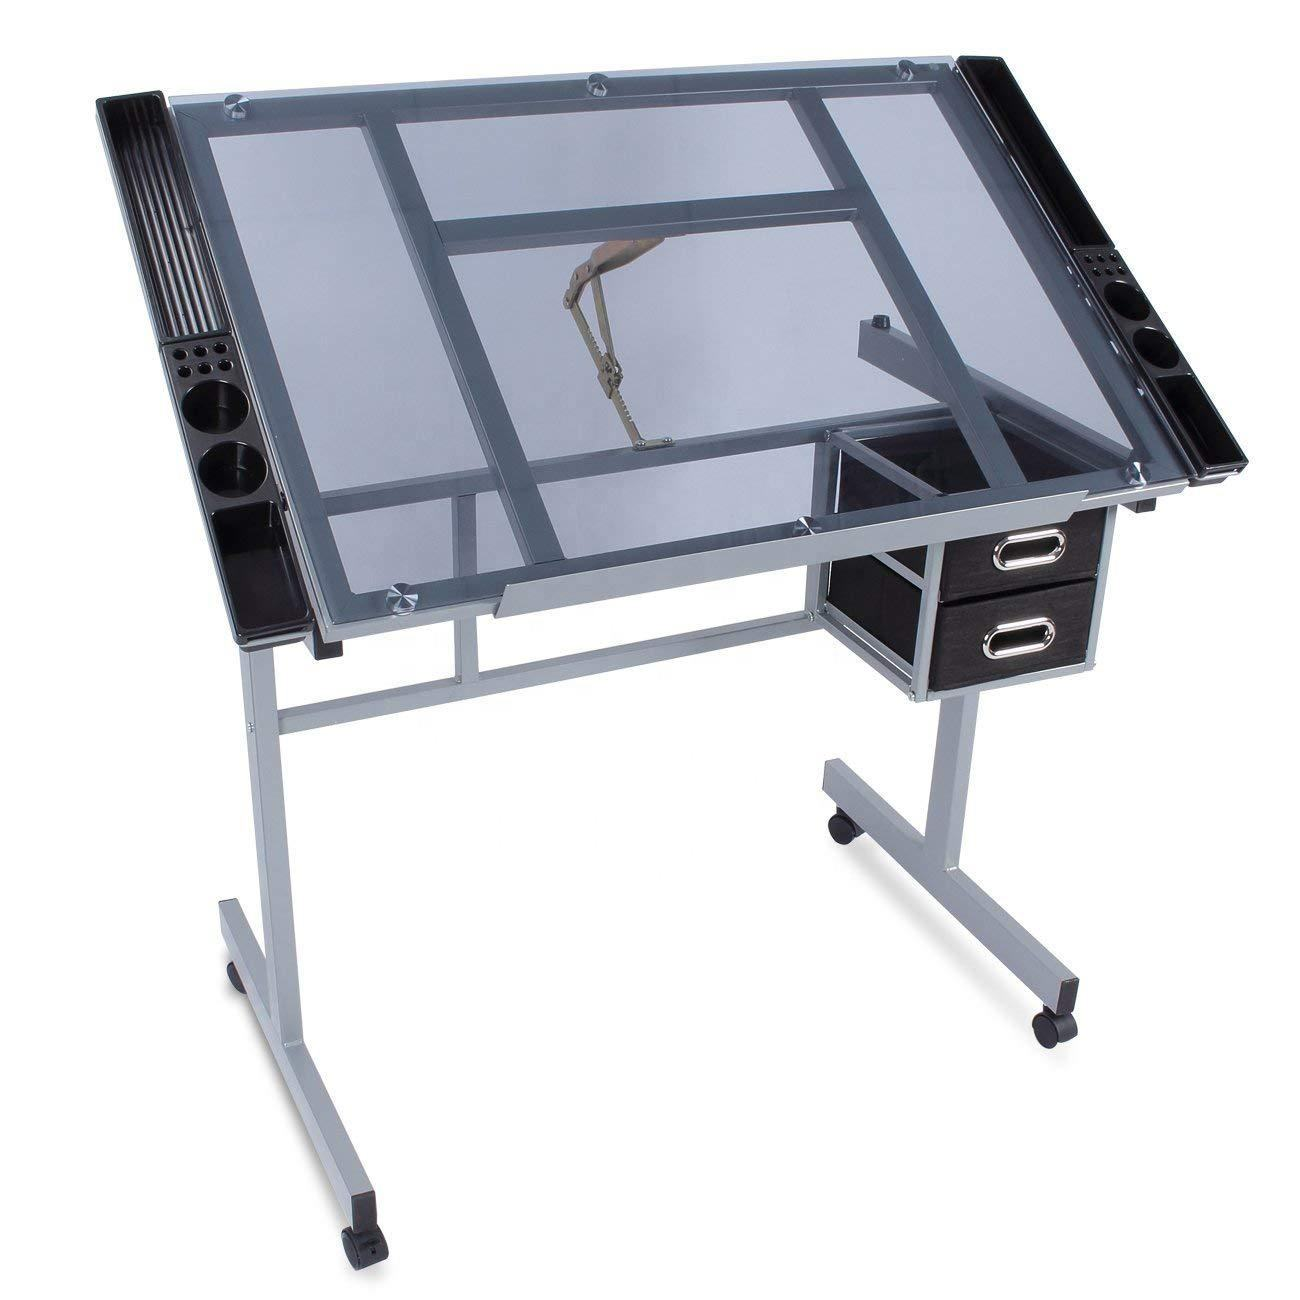 Glass Top drafting table adjustable drawing desk studio art craft table